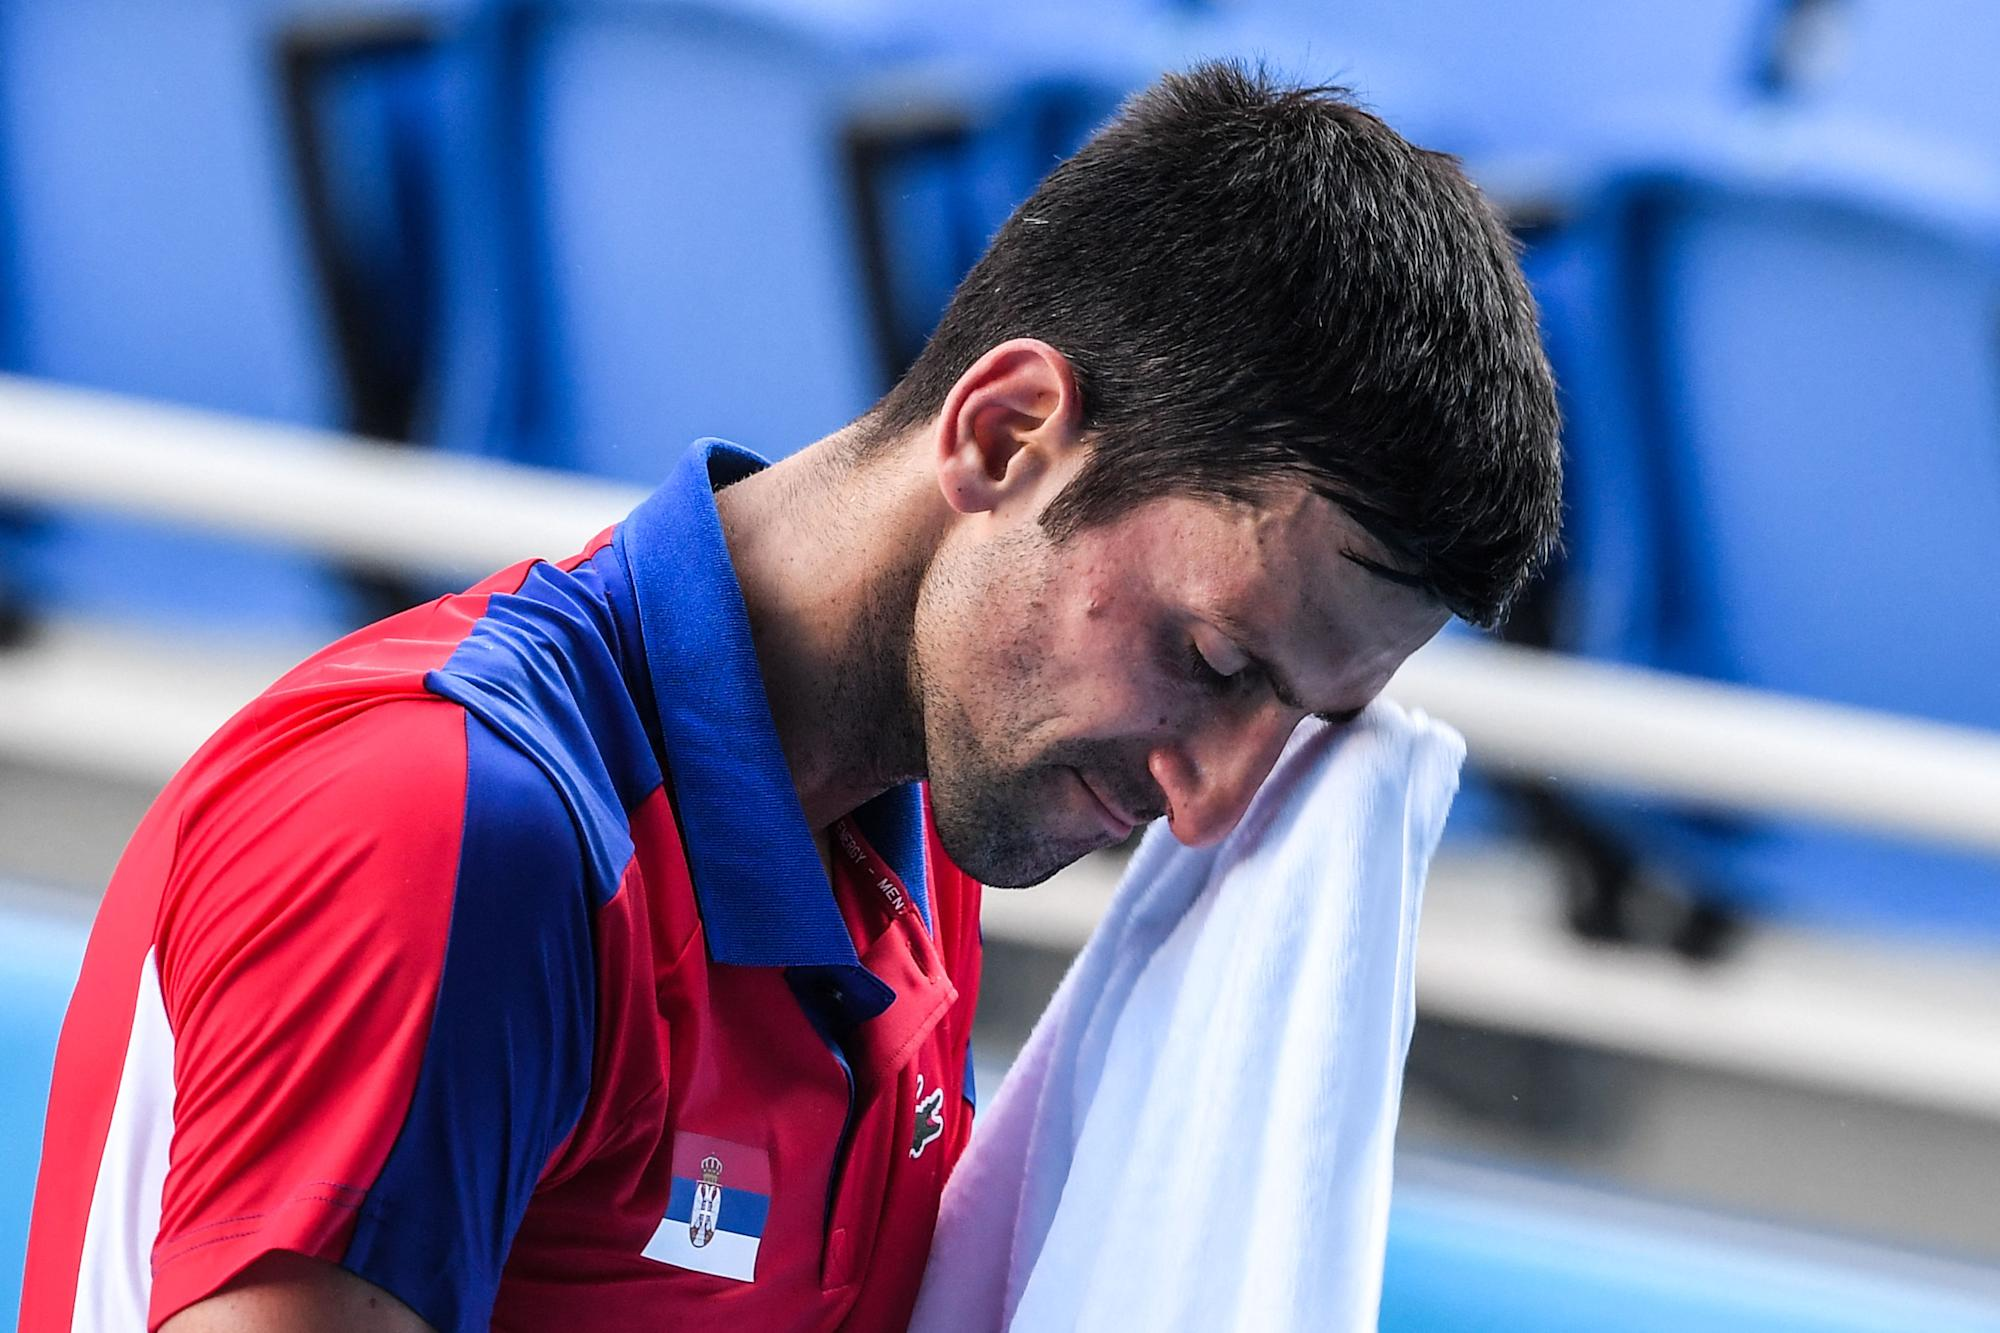 Novak Djokovic trashes 2 rackets in bronze medal loss, withdraws from mixed doubles medal match